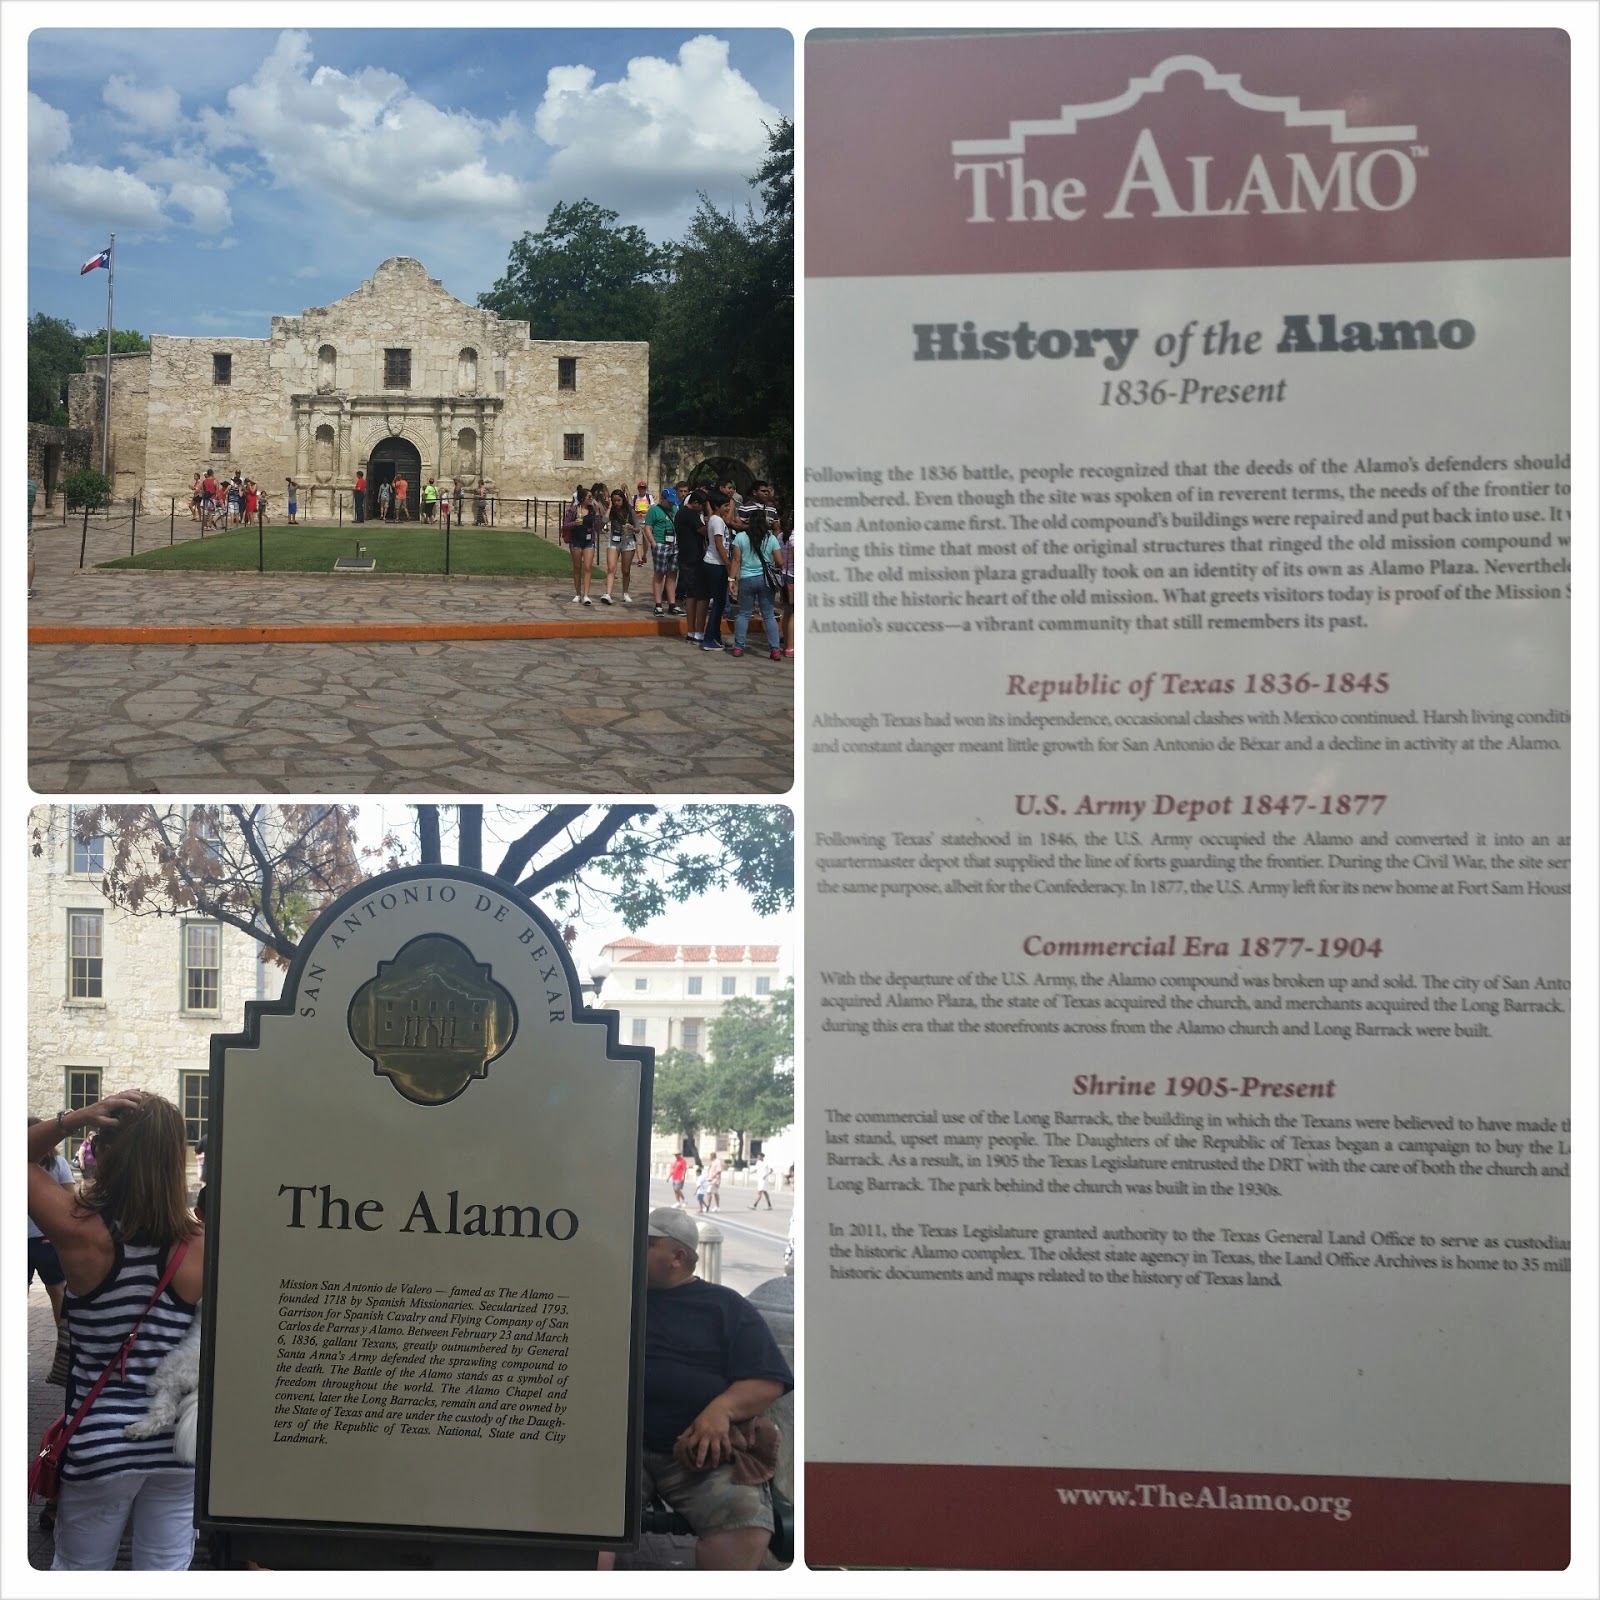 My Epic Family Road Trip Vacation! #RoadTrip #TheAlamo via ProductReviewMom.com